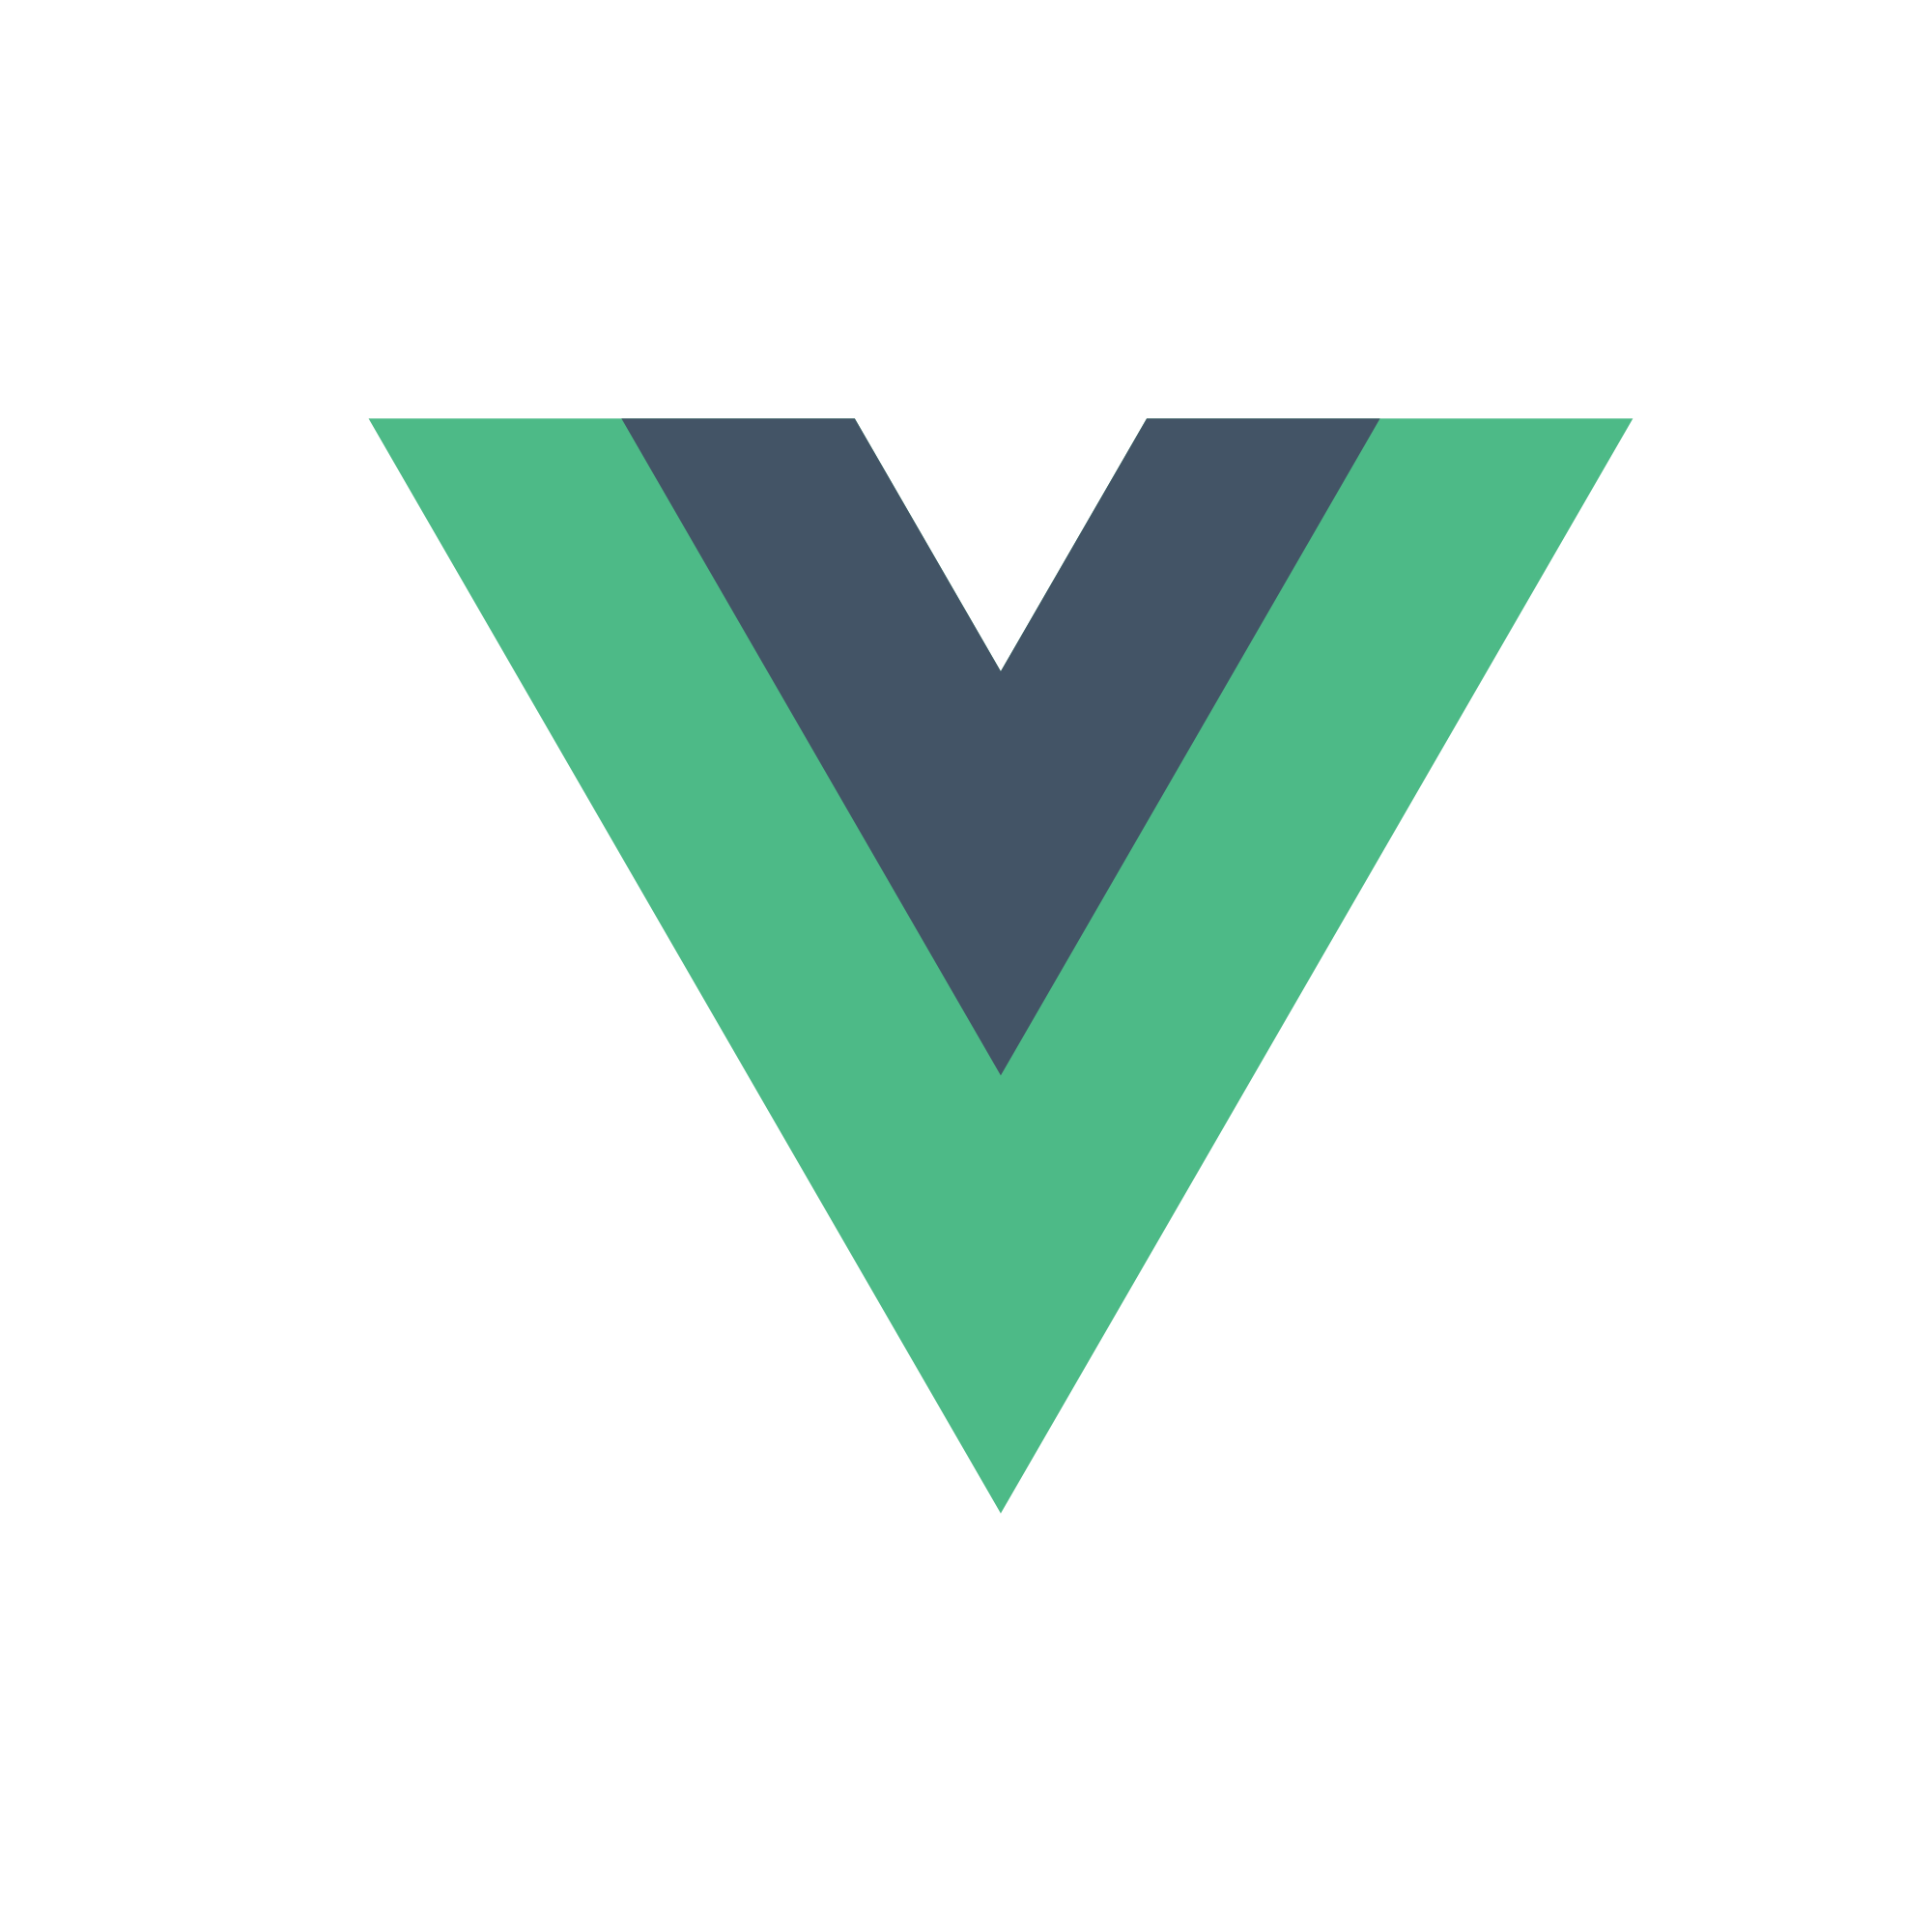 Vue Workshop - State of the art Vue training